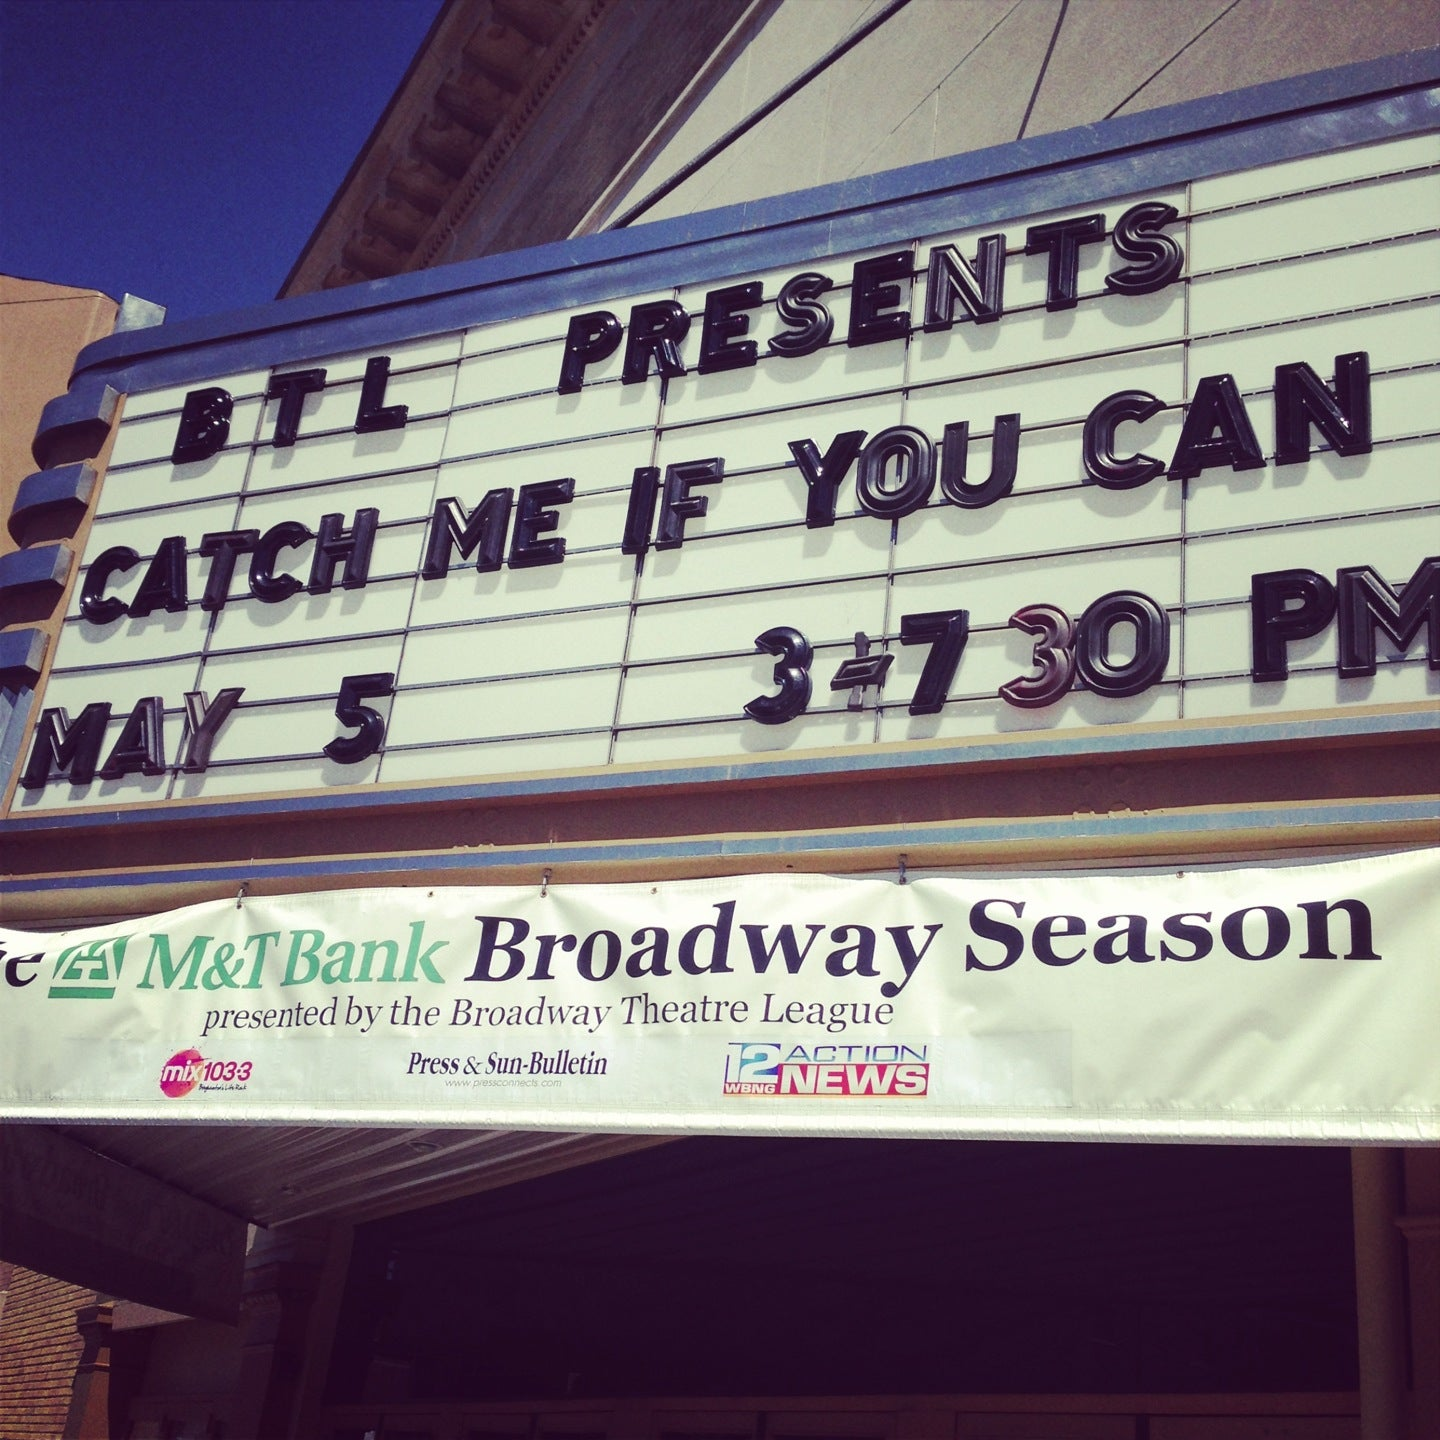 Check out Binghamton's Restaurant Week! and many more! Local Sports. Binghamton Mets Binghamton Senators. Art Galleries. The Bundy Museum Jungle Science Roberson Museum Cooperative Gallery First Friday on Gorgeous Washington Street Broome County Arts Council. Where to Watch. Art Mission Theatre AMC Theatre Regal Cinema Bundy Museum - Cult.